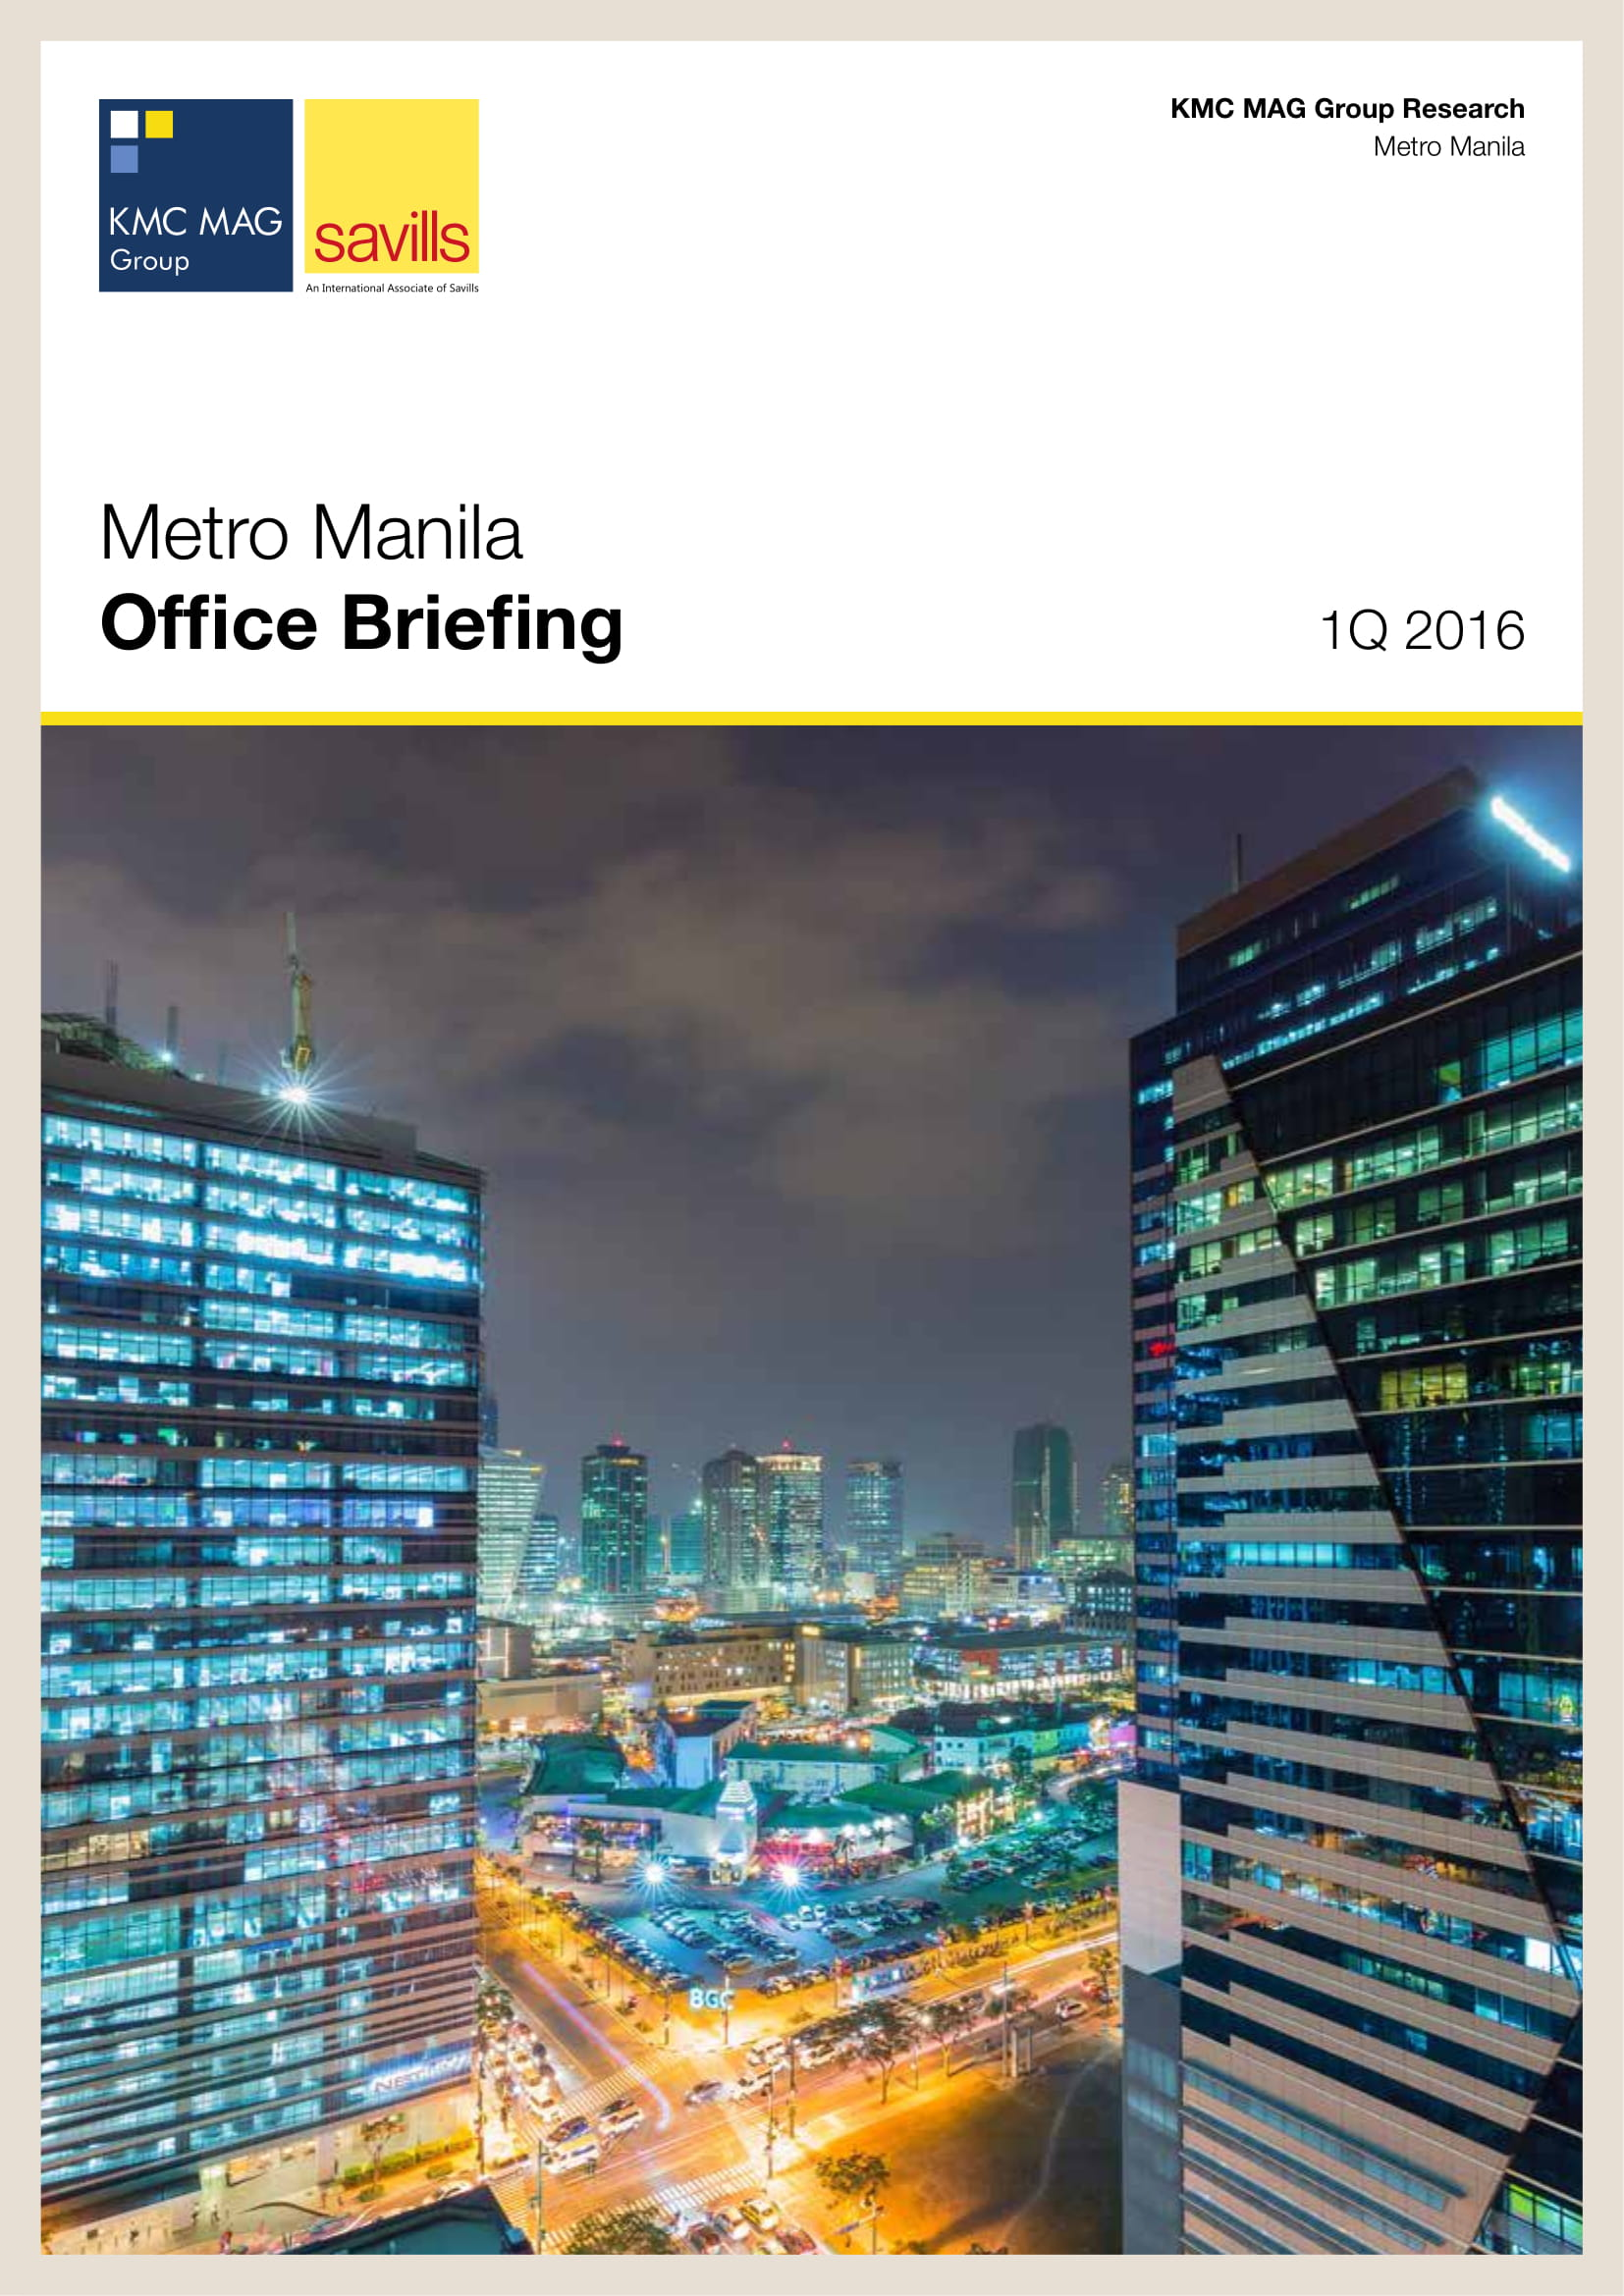 Metro Manila Office Briefing 1Q 2016